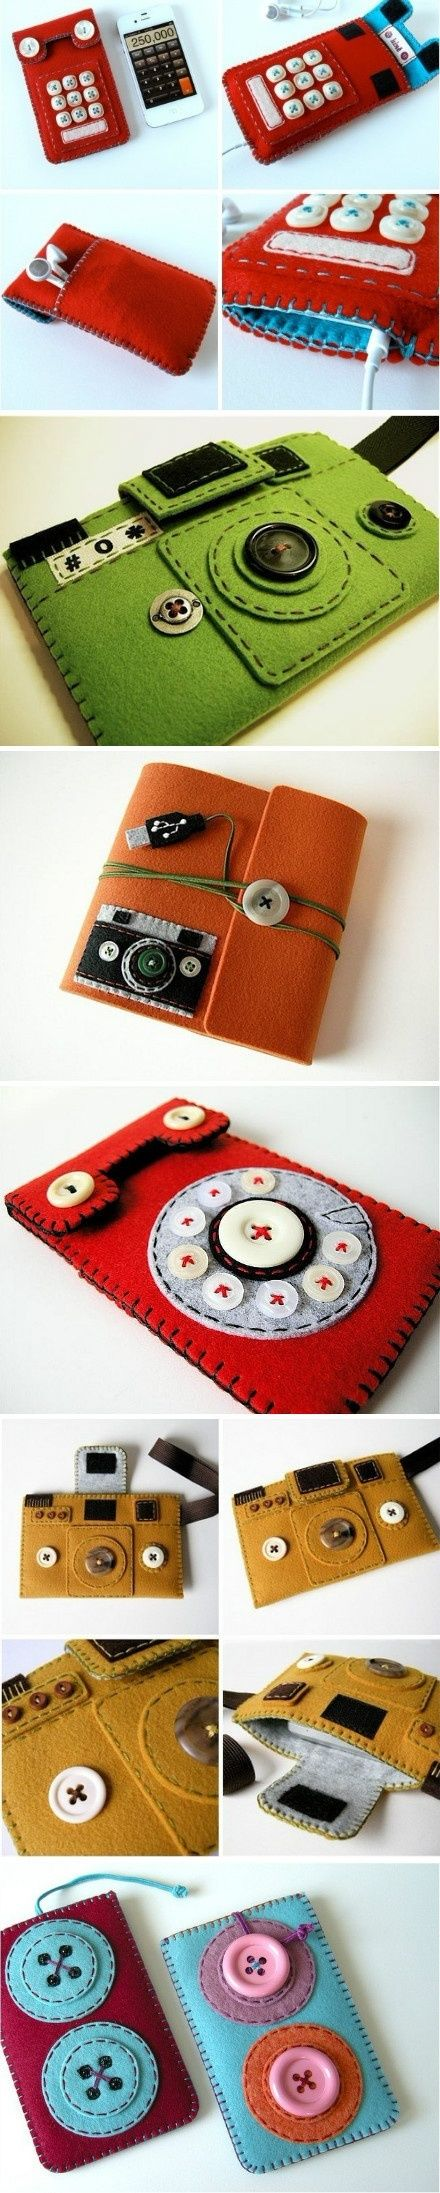 Non-woven fabric made various mobile phone protective cover, very creative